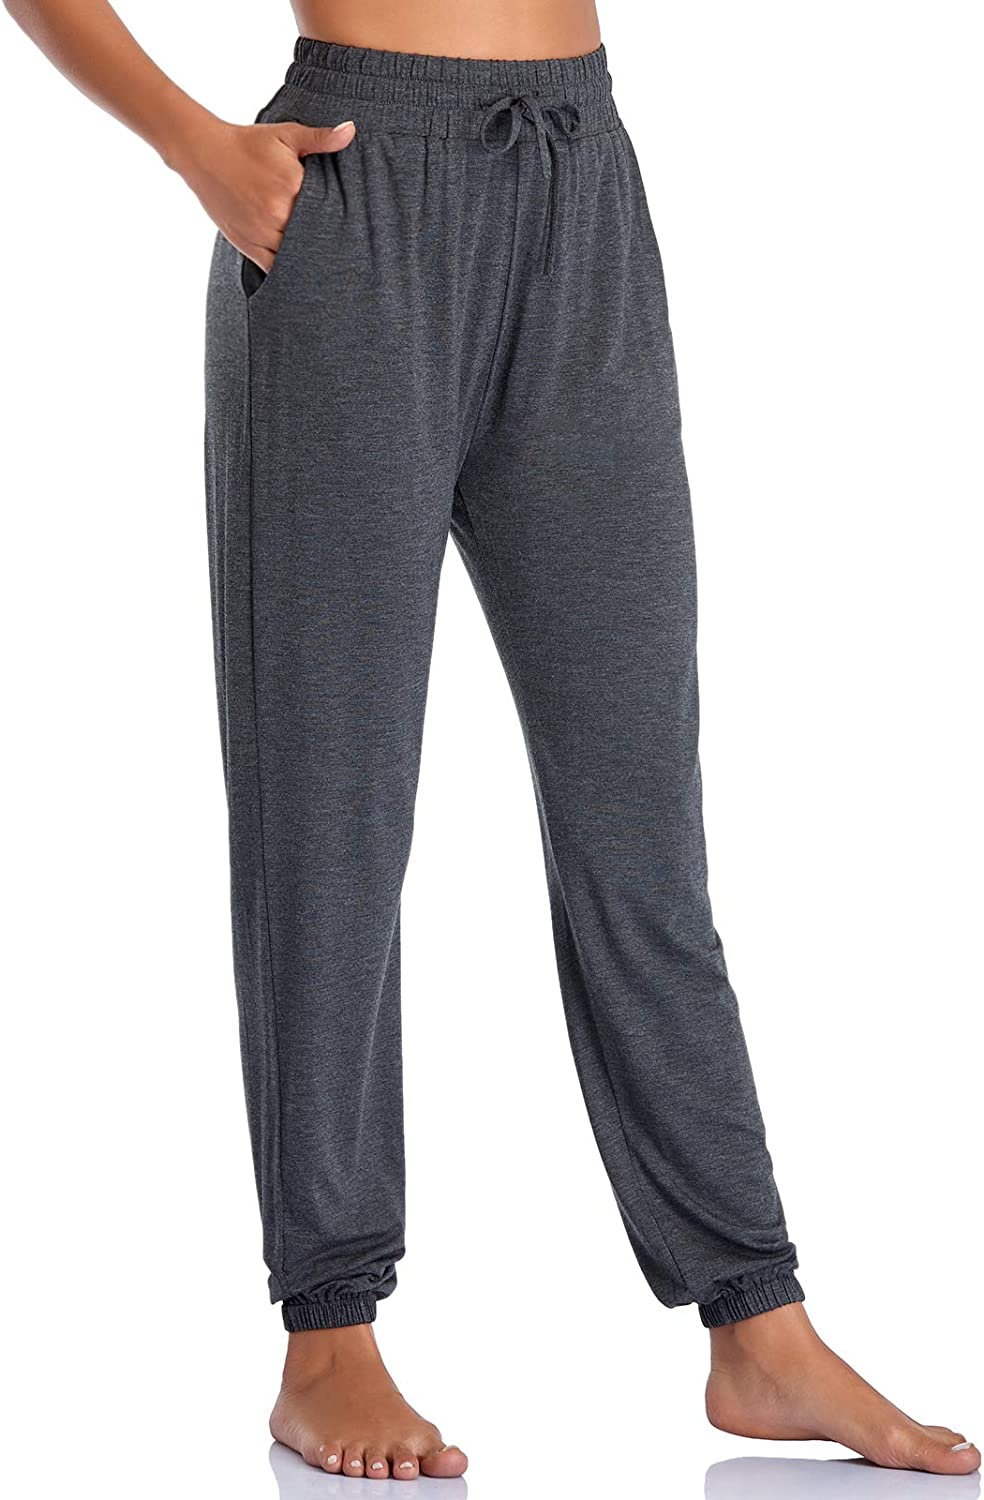 Envlon Women's Jogger Pants Tampa Mall with Many popular brands Yoga Loose Stretc Pockets